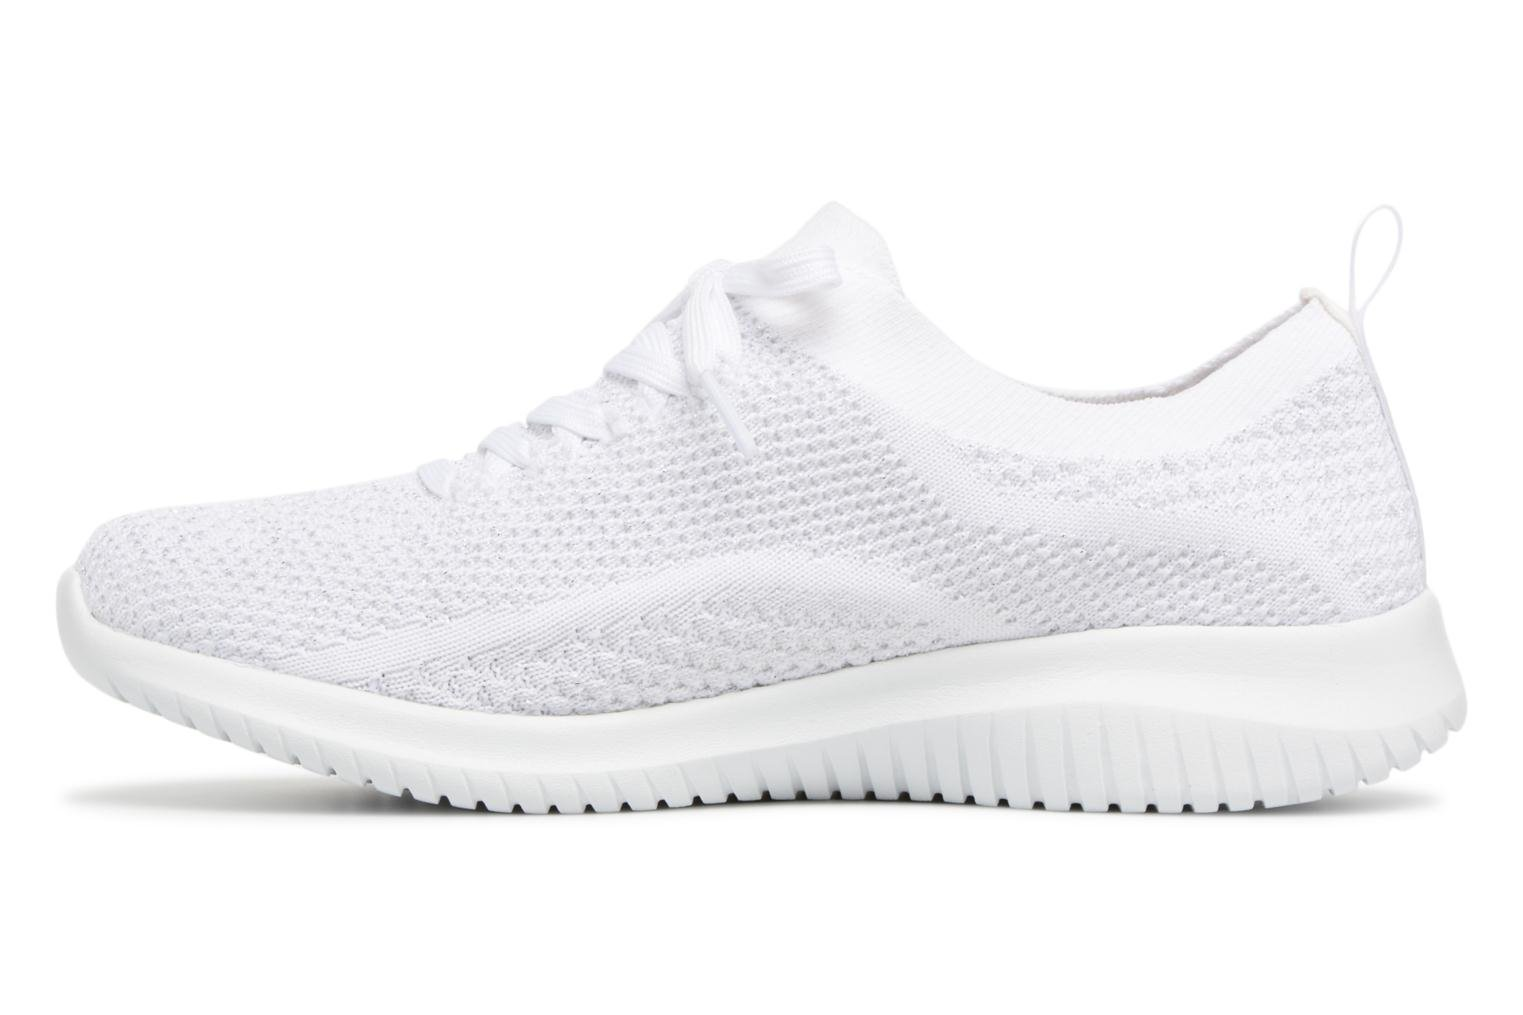 Zapatillas de deporte Skechers Ultra Flex Salutations Blanco vista de frente